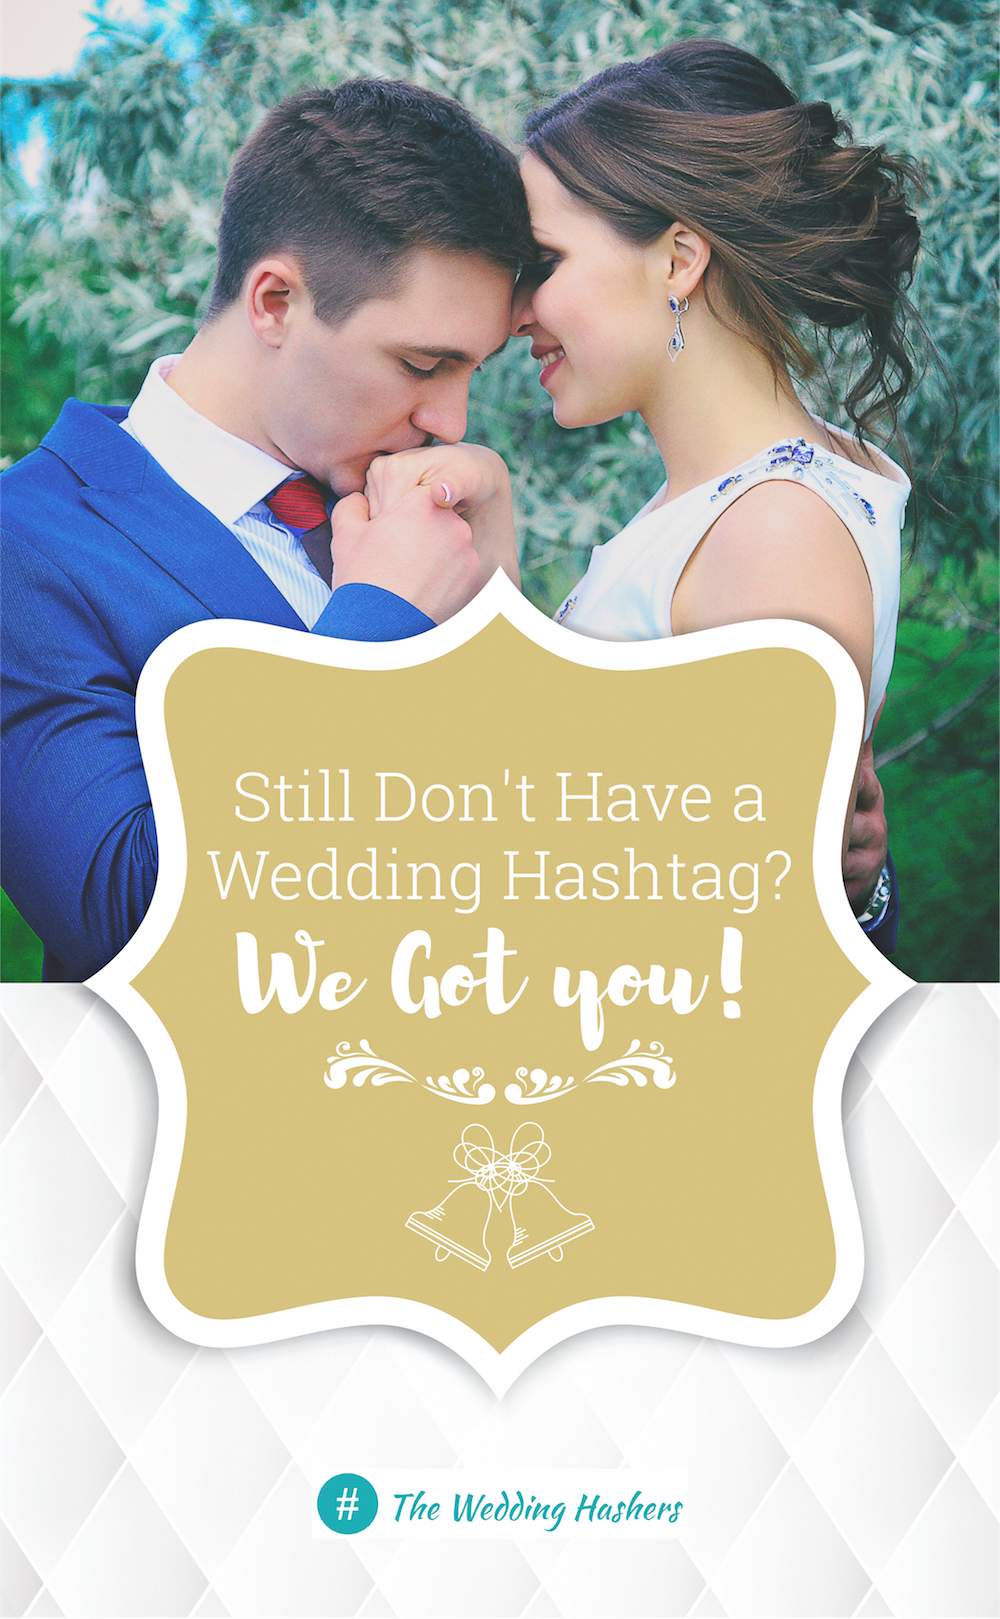 Looking for a great wedding hashtag? Get the best wedding